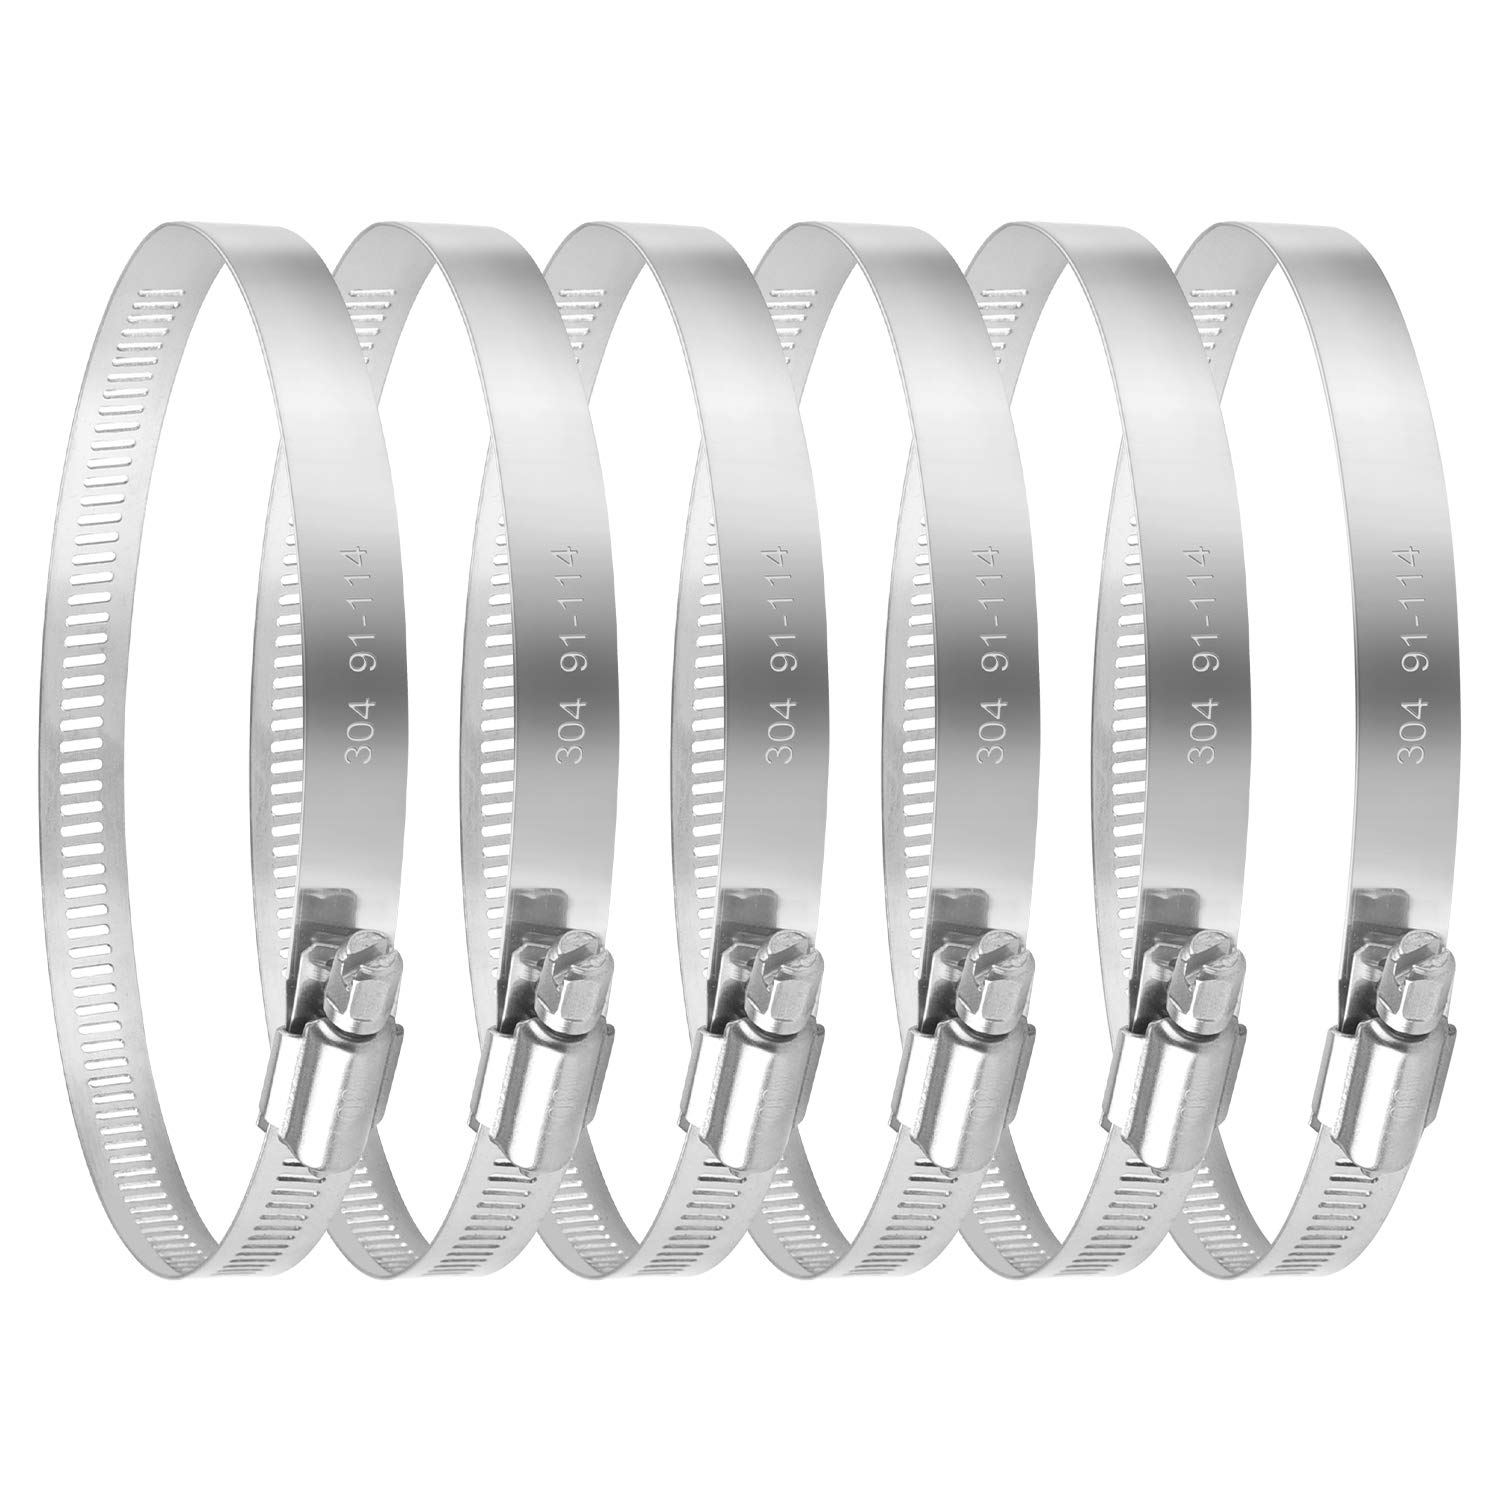 TERRADISE Hose Clamps 4 Pack 4 Pcs Adjustable Dryer Vent Pipe Clamp Worm Gear Clamps for Grow Tents HVAC 4 Inch Stainless Steel Duct Clamps Set of 4